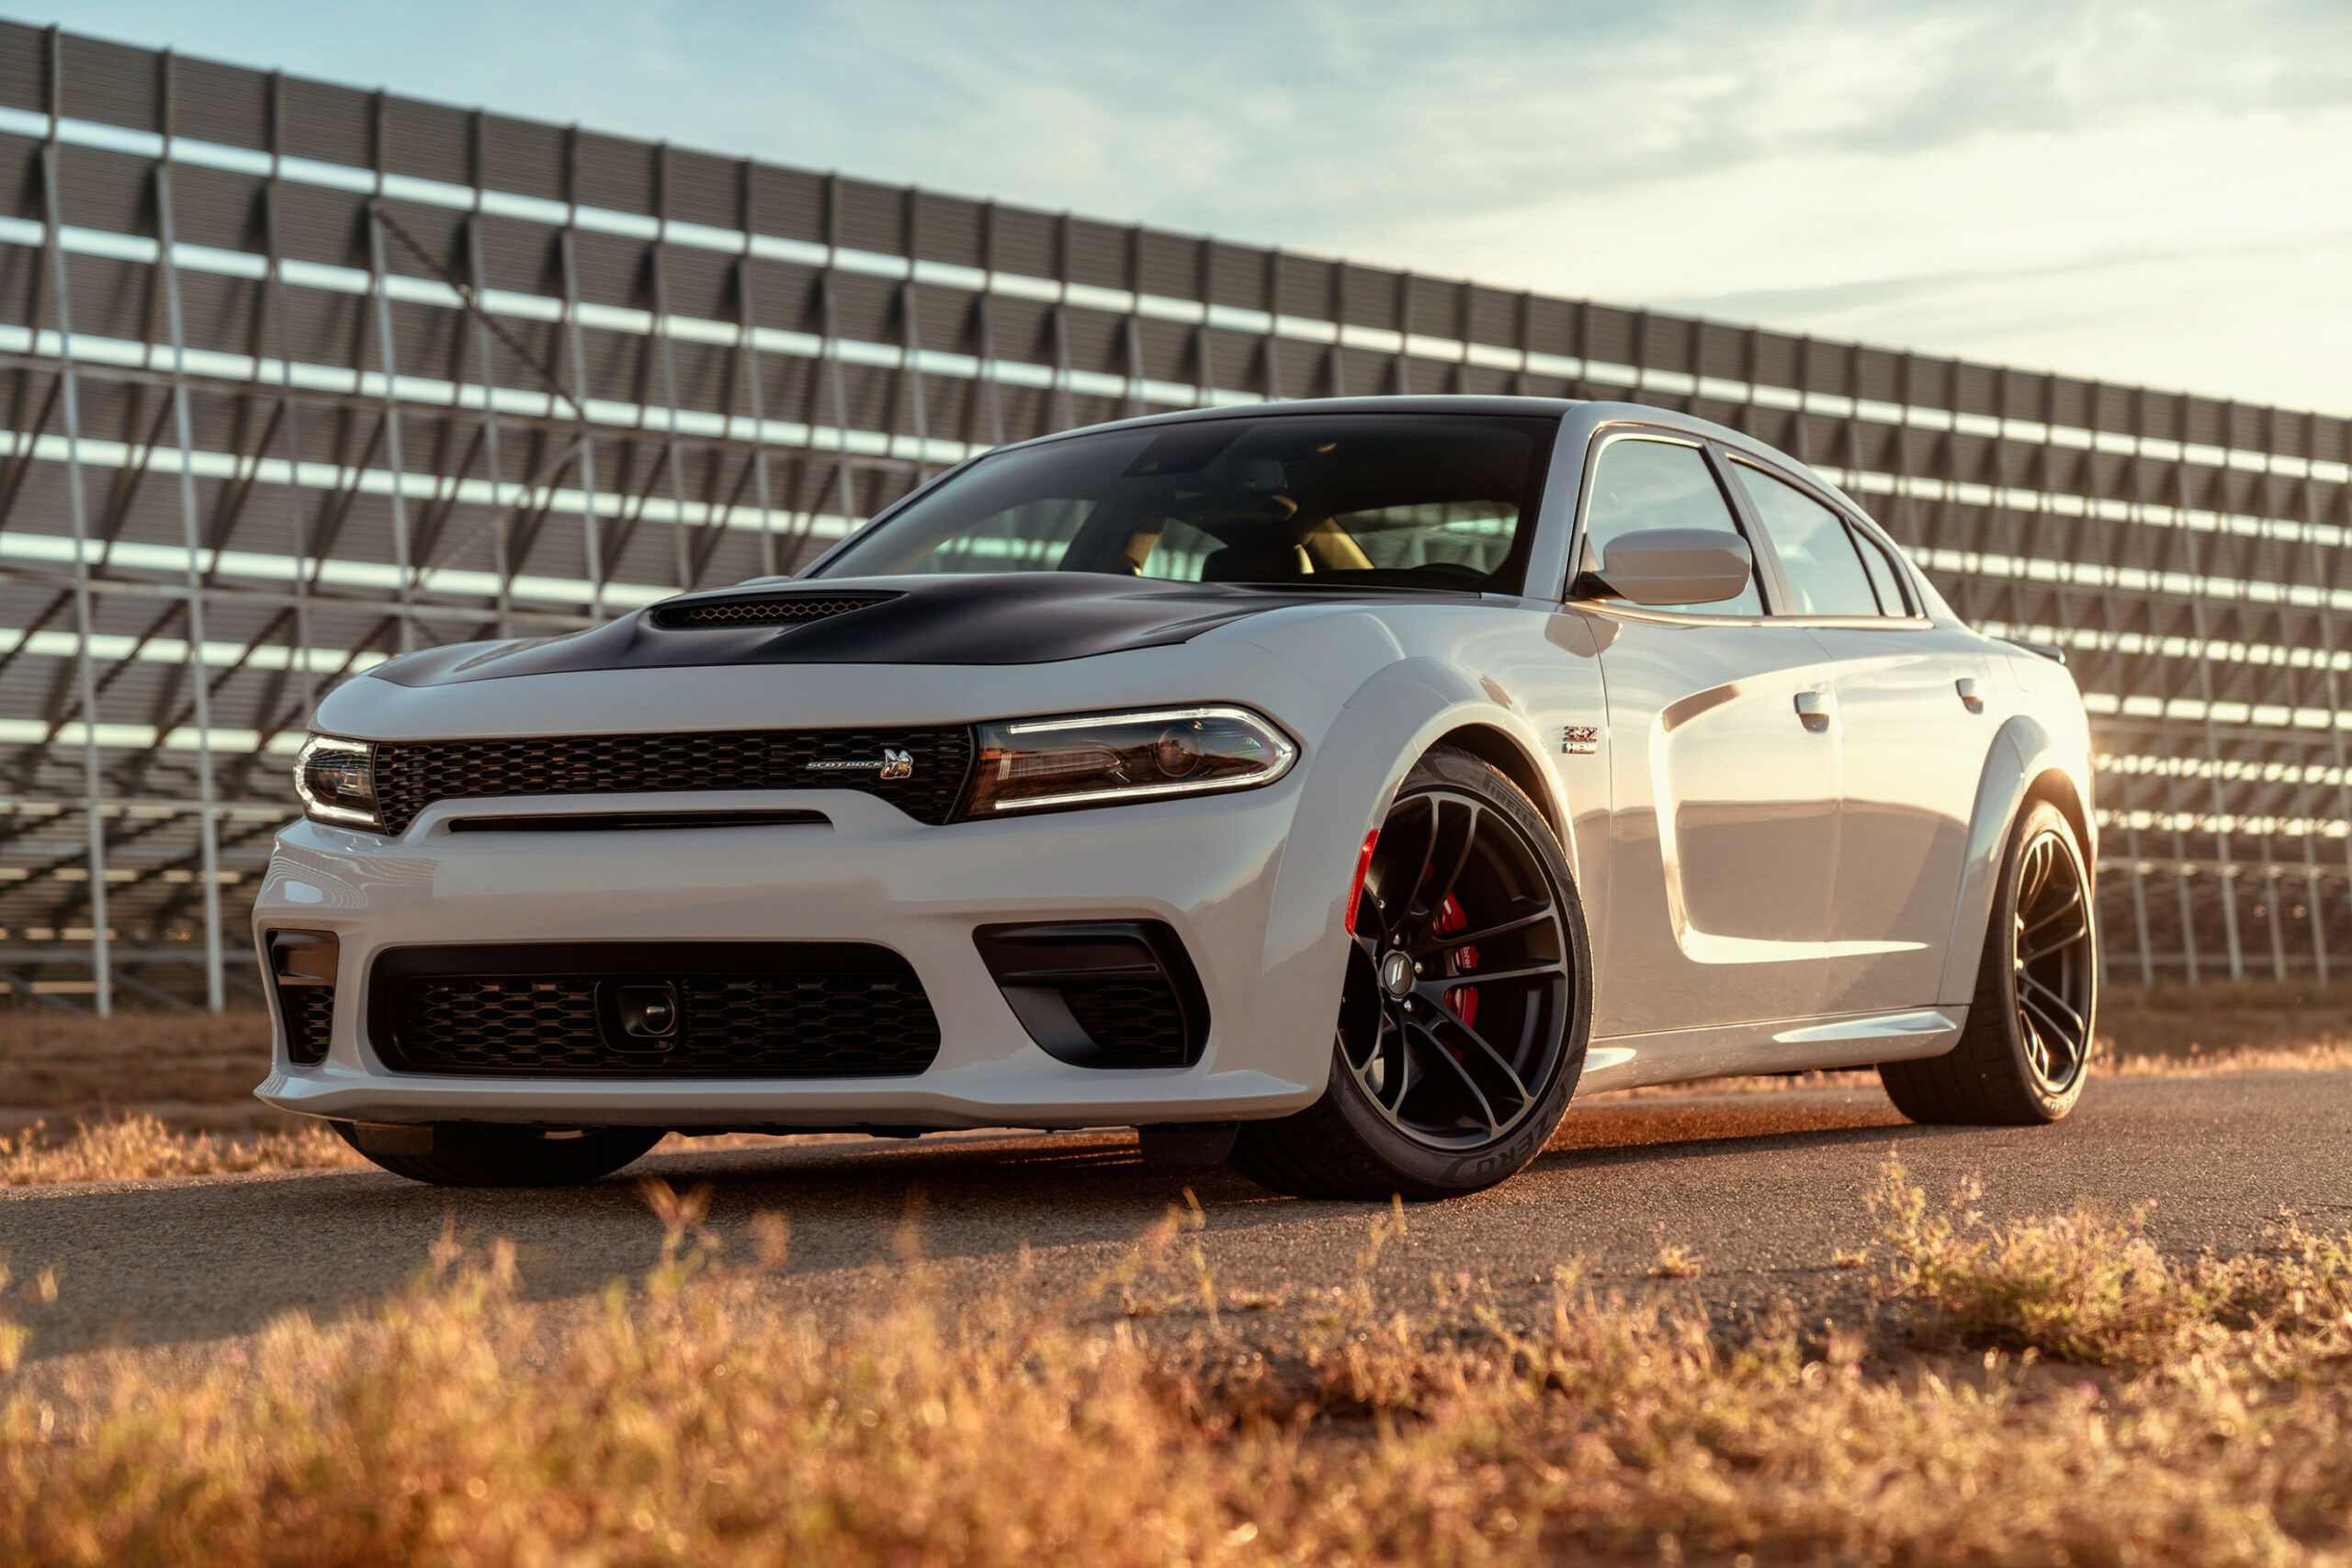 9 Dodge Charger Review, Pricing, and Specs